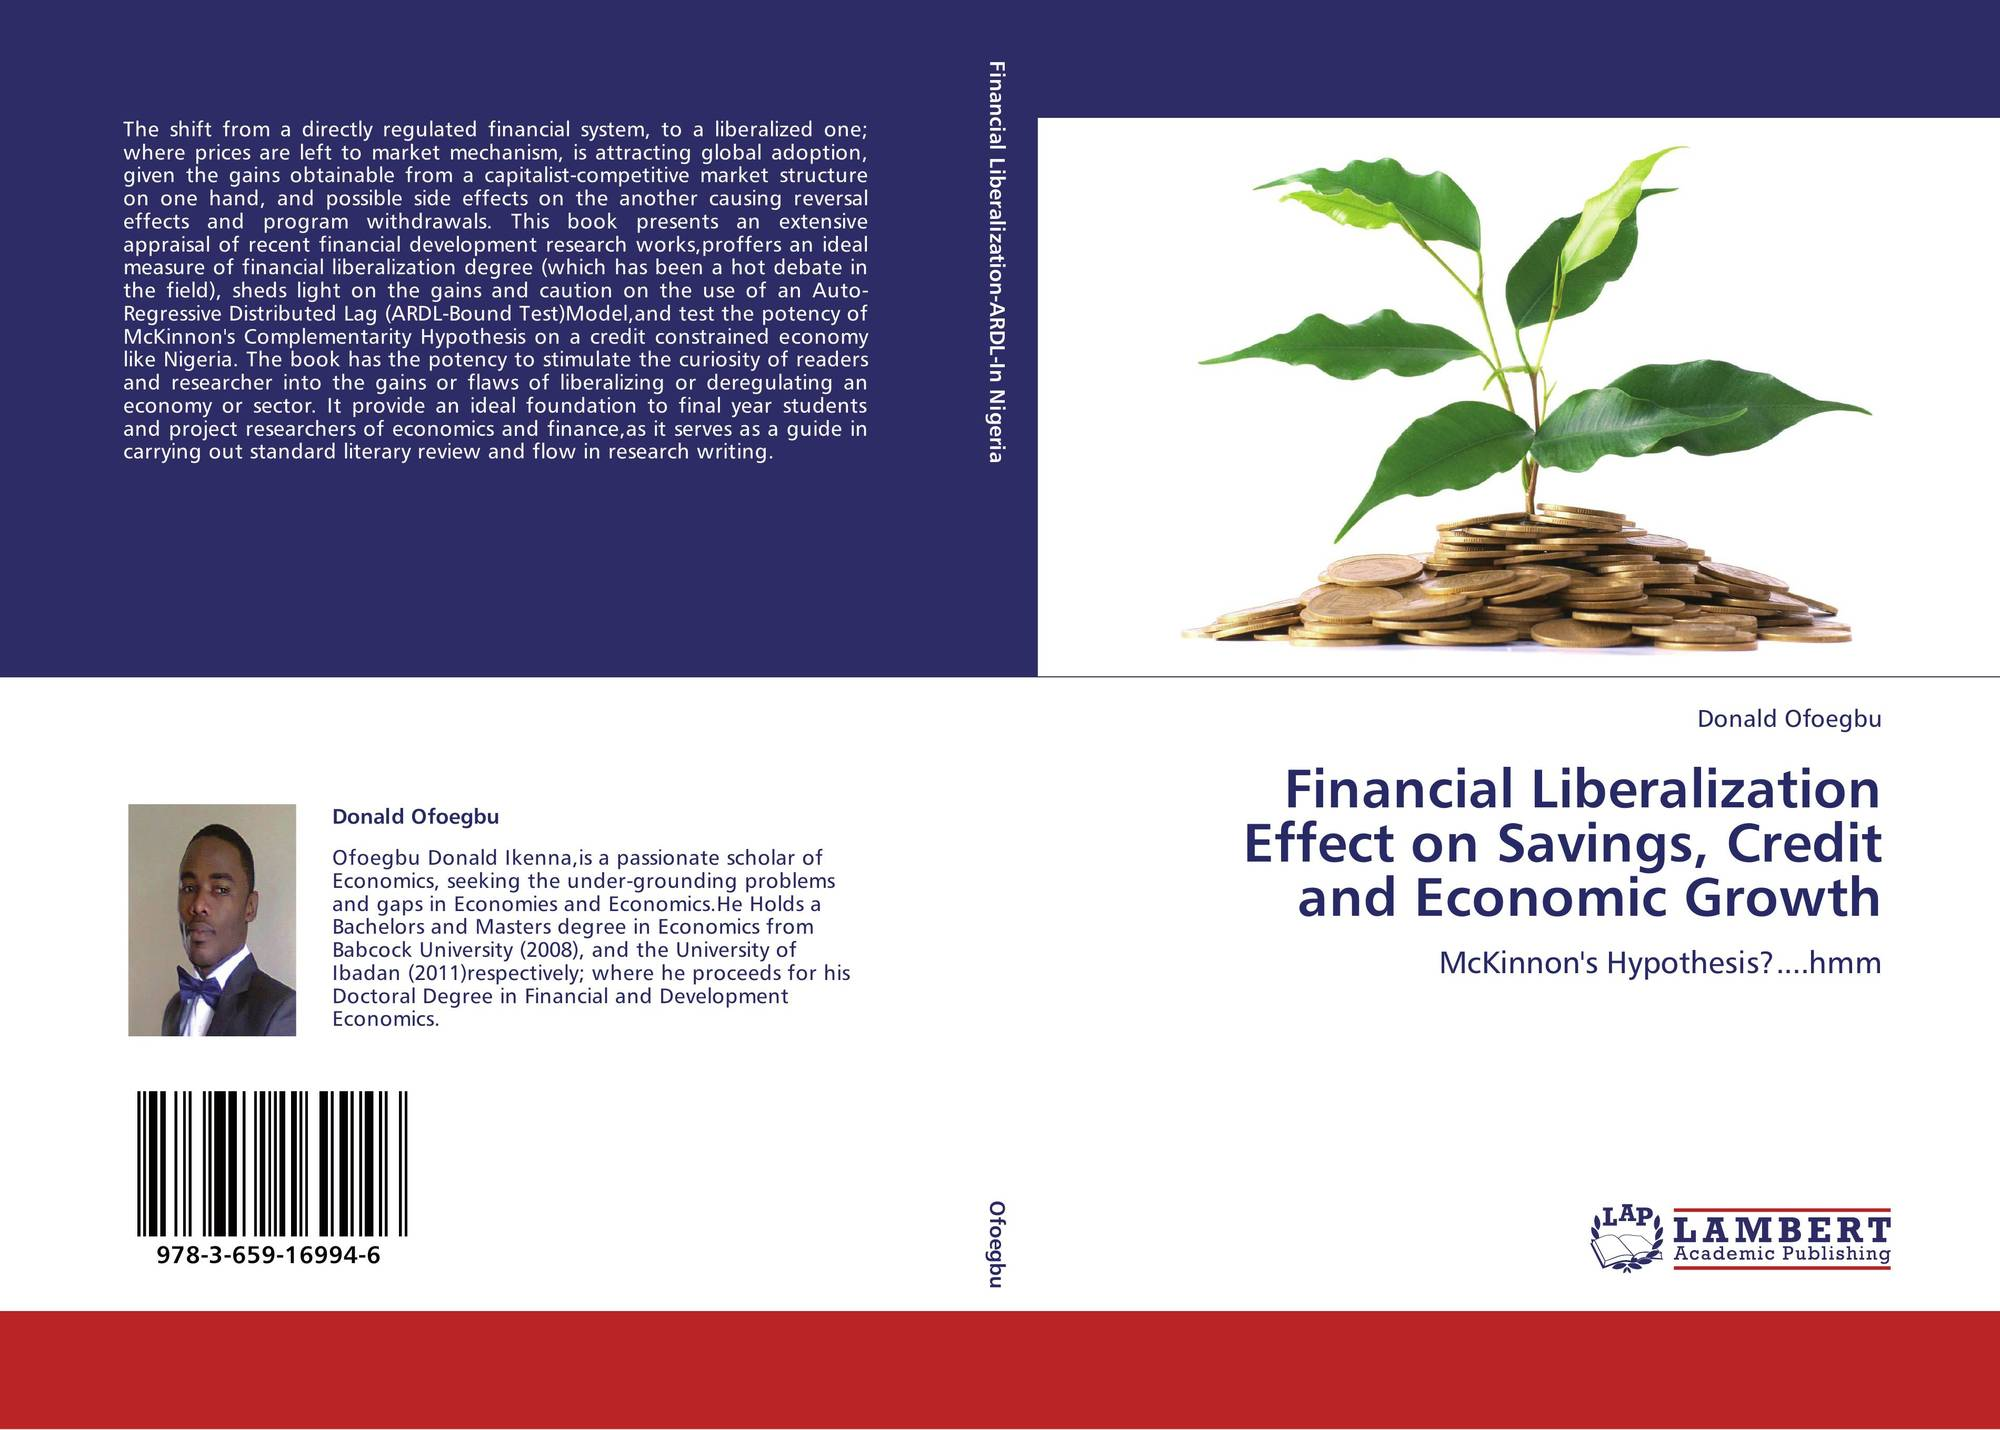 financial liberalisation and economic development 2 an overview of the financial liberalisation policy in nigeria after serious external debt and balance-of-payment crises in the mid-1980s, nigeria changed its economic policy from a direct to an indirect market-oriented approach through the structural adjustment programmes (saps) in 1986.